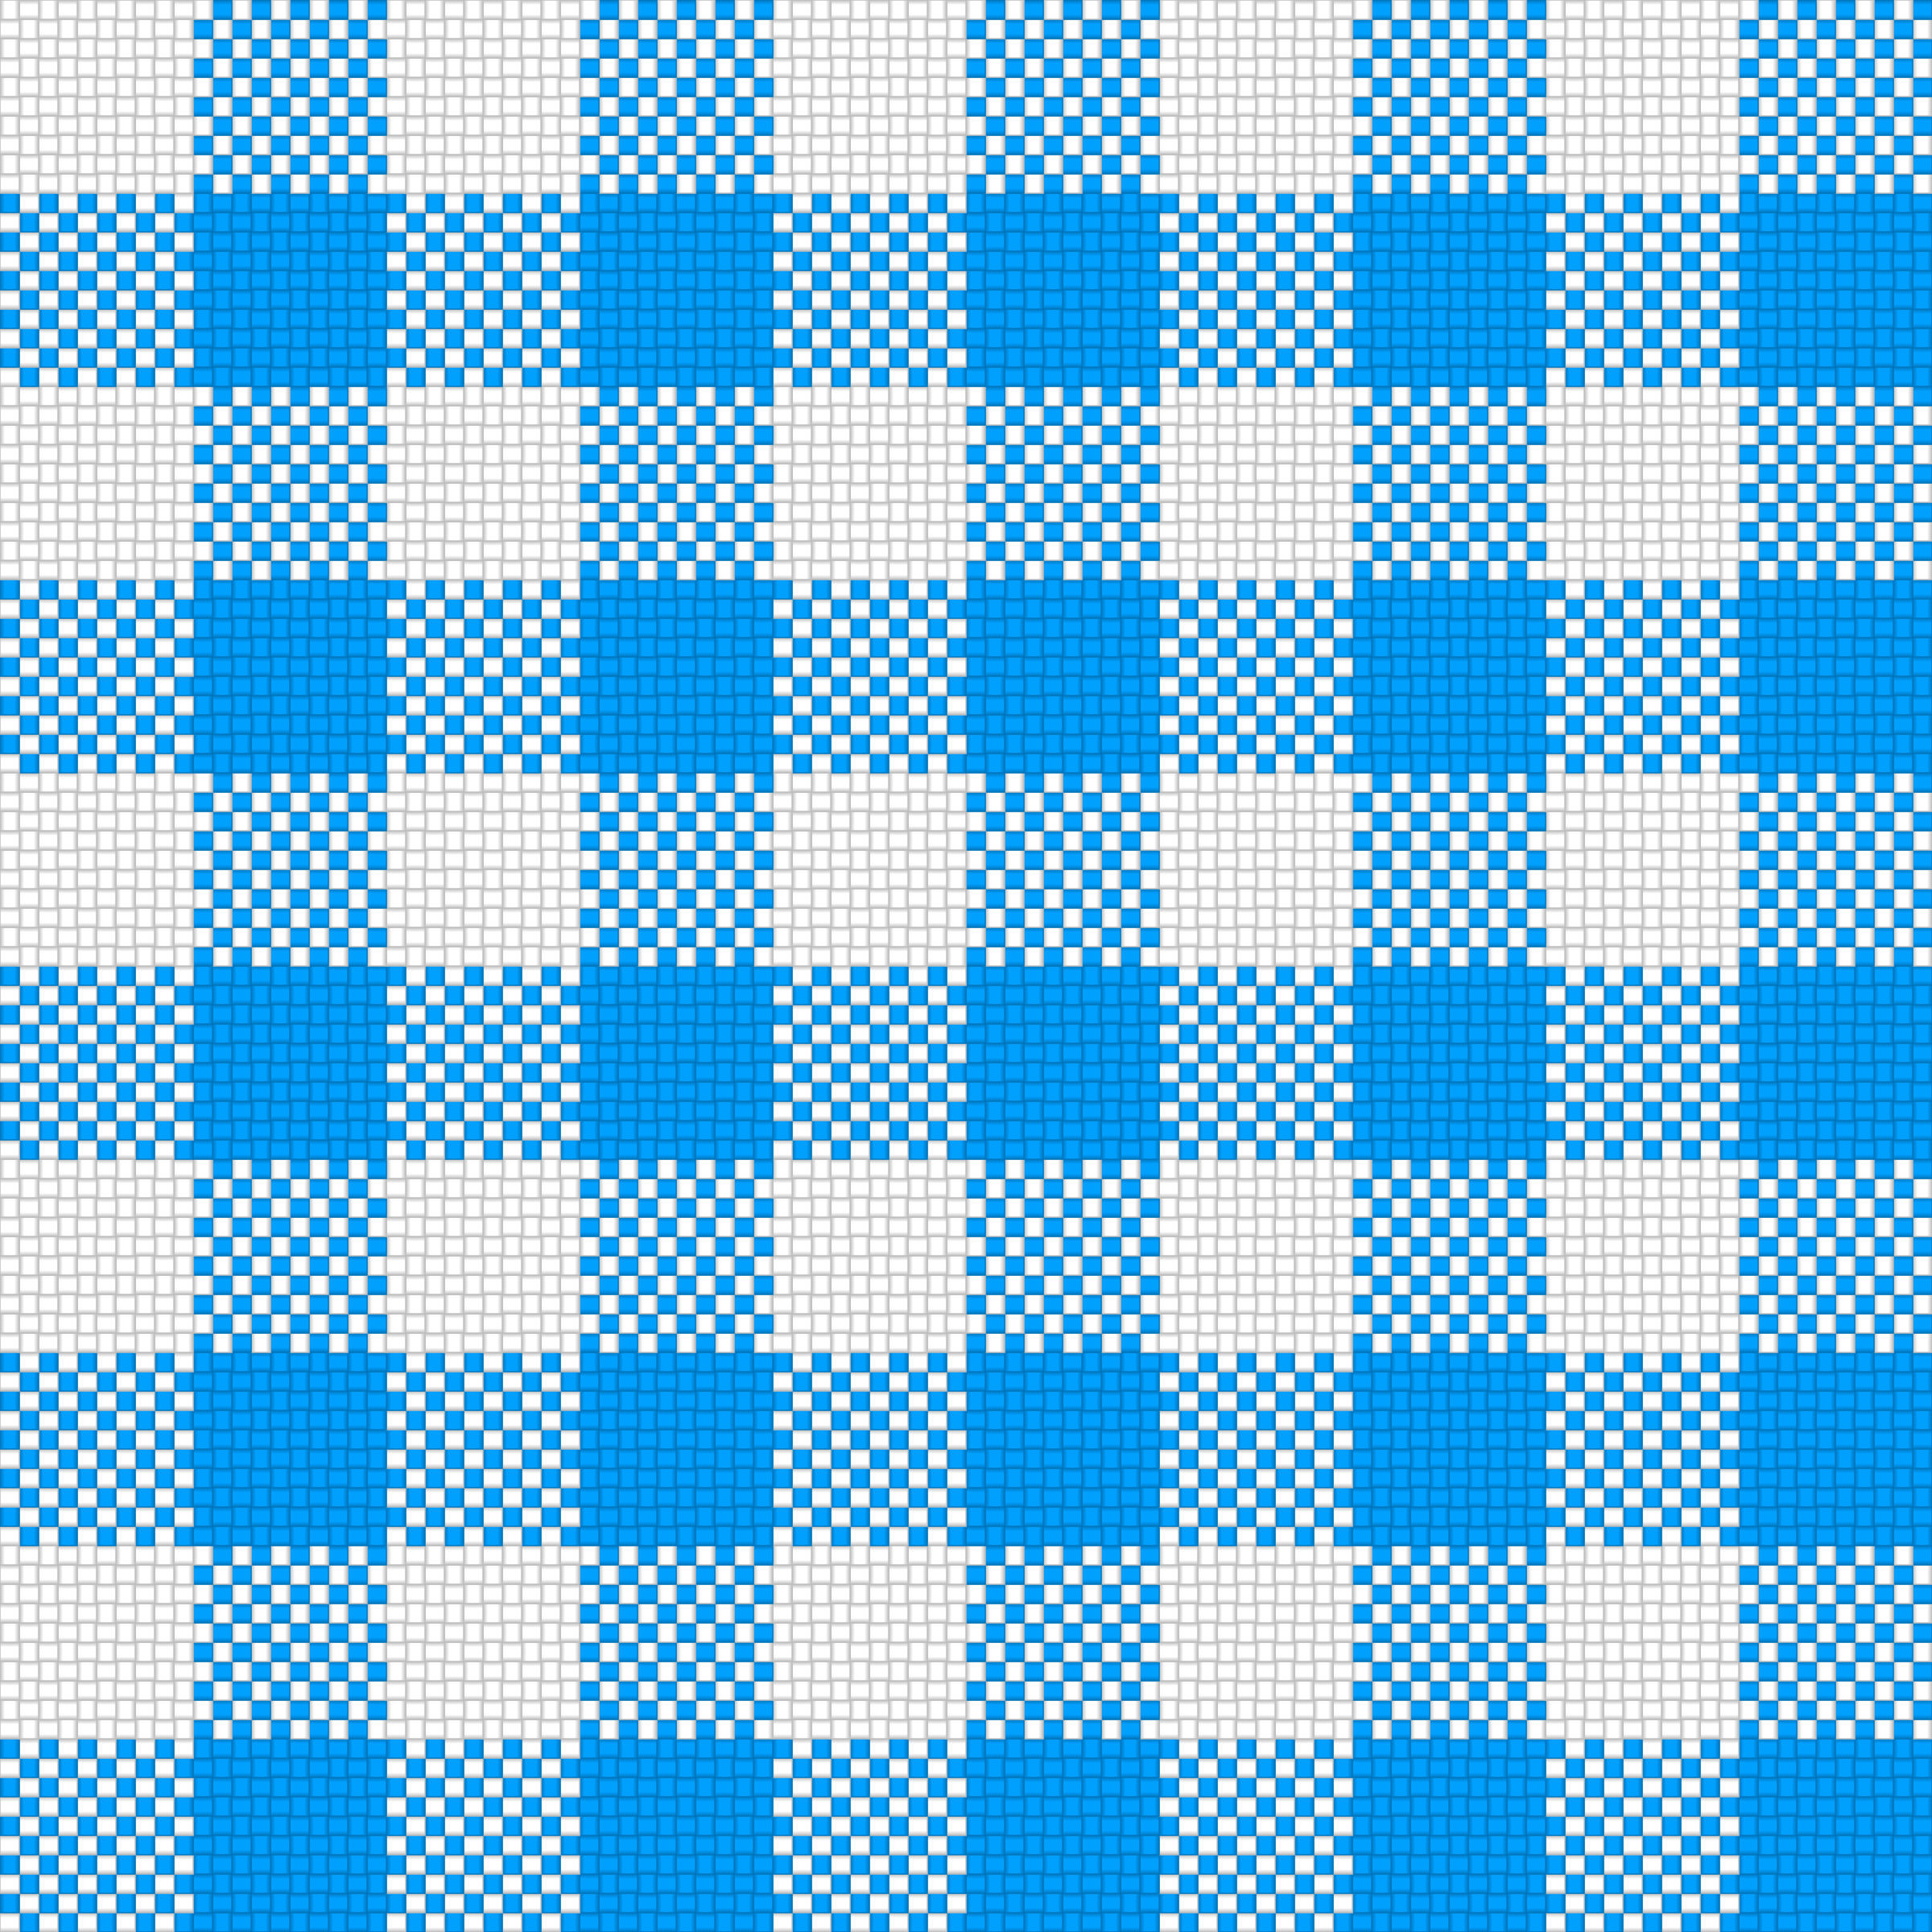 Checker Plaid Cloth Blue White by gubrww2